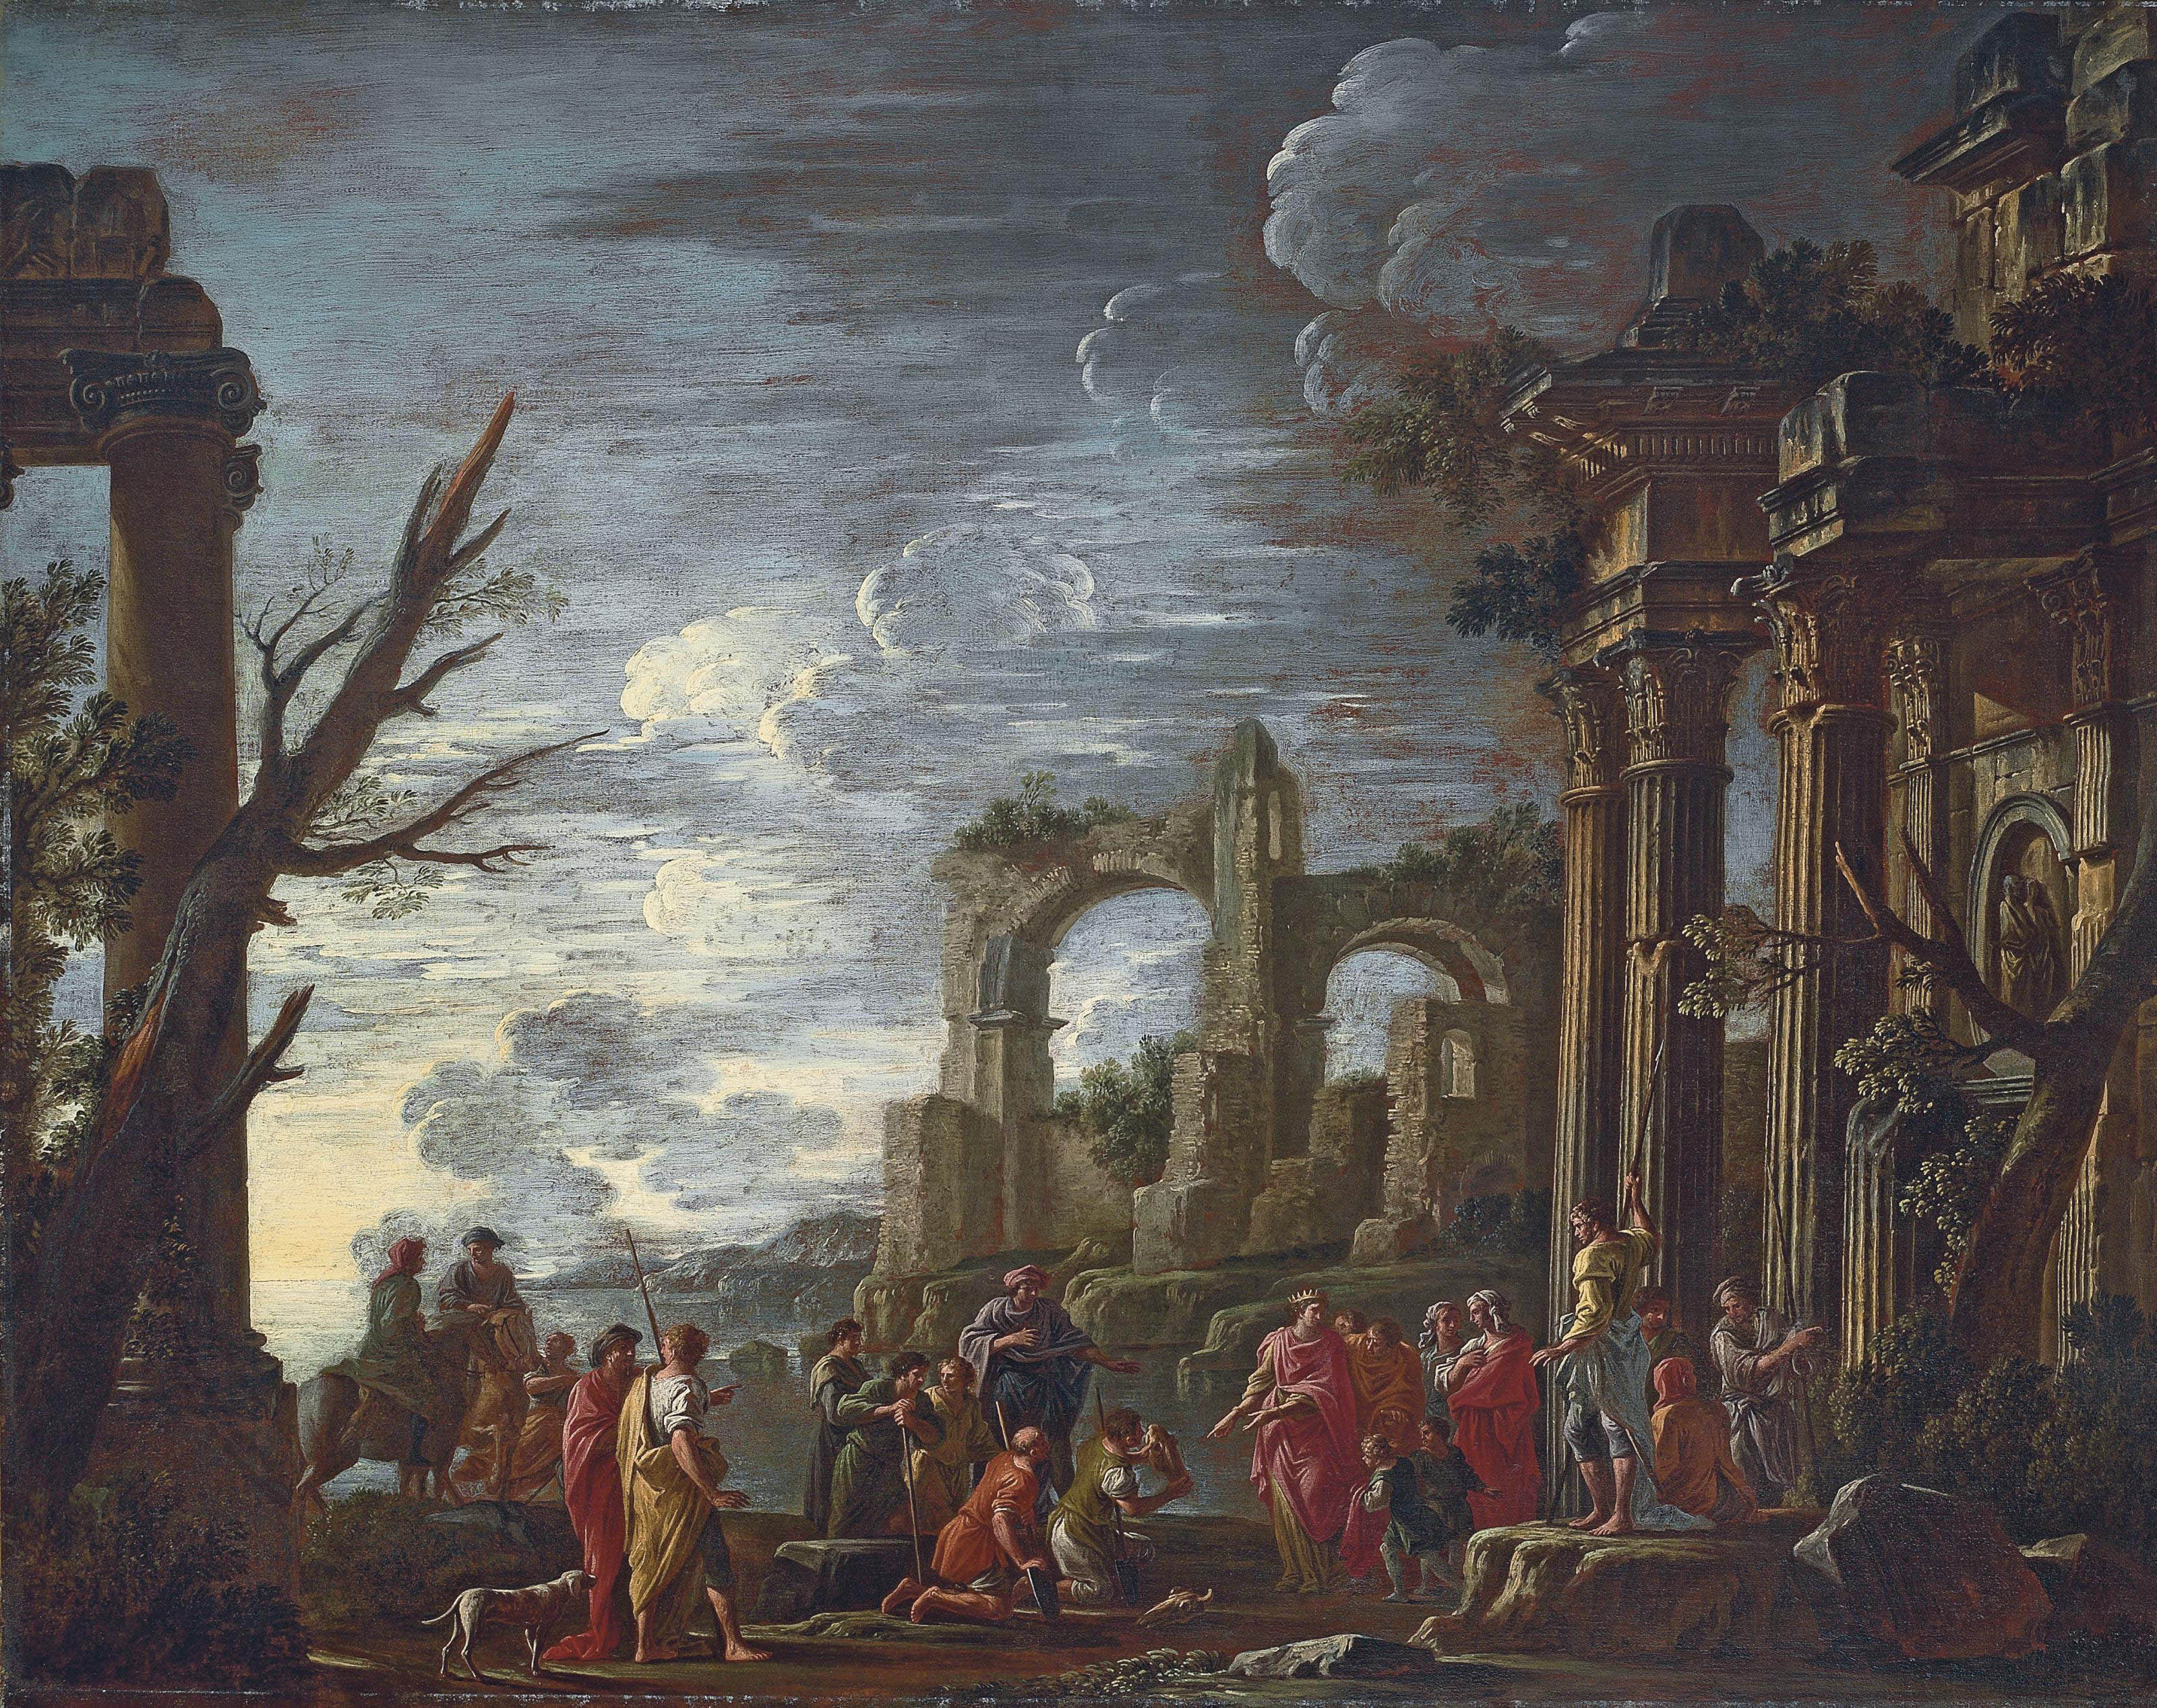 A capriccio landscape with a king and other figures amidst classical ruins